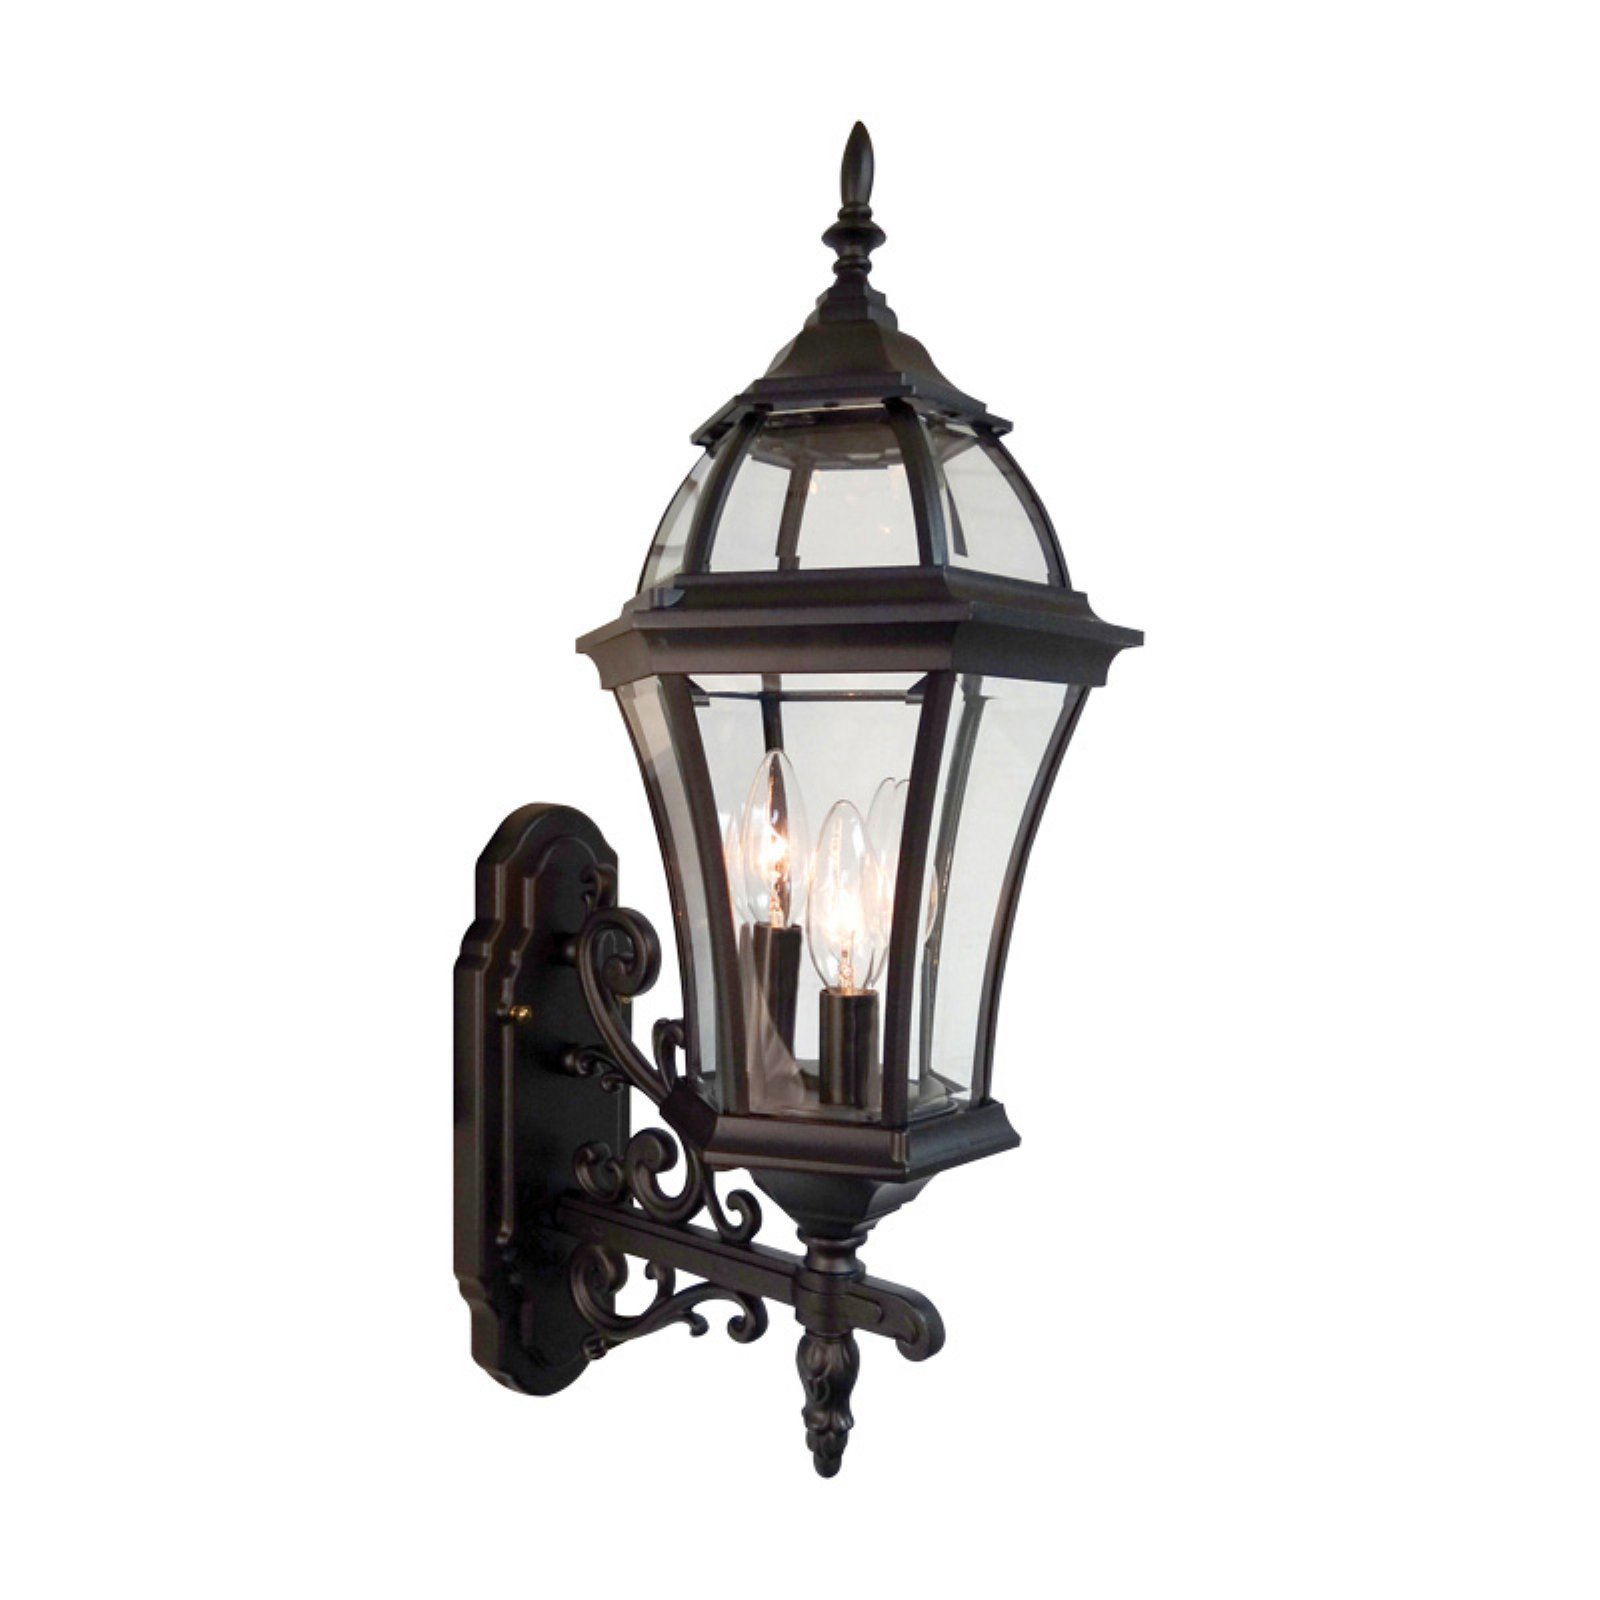 Special Lite Products Plantation F-2957 Bottom Mount Outdoor Wall Light